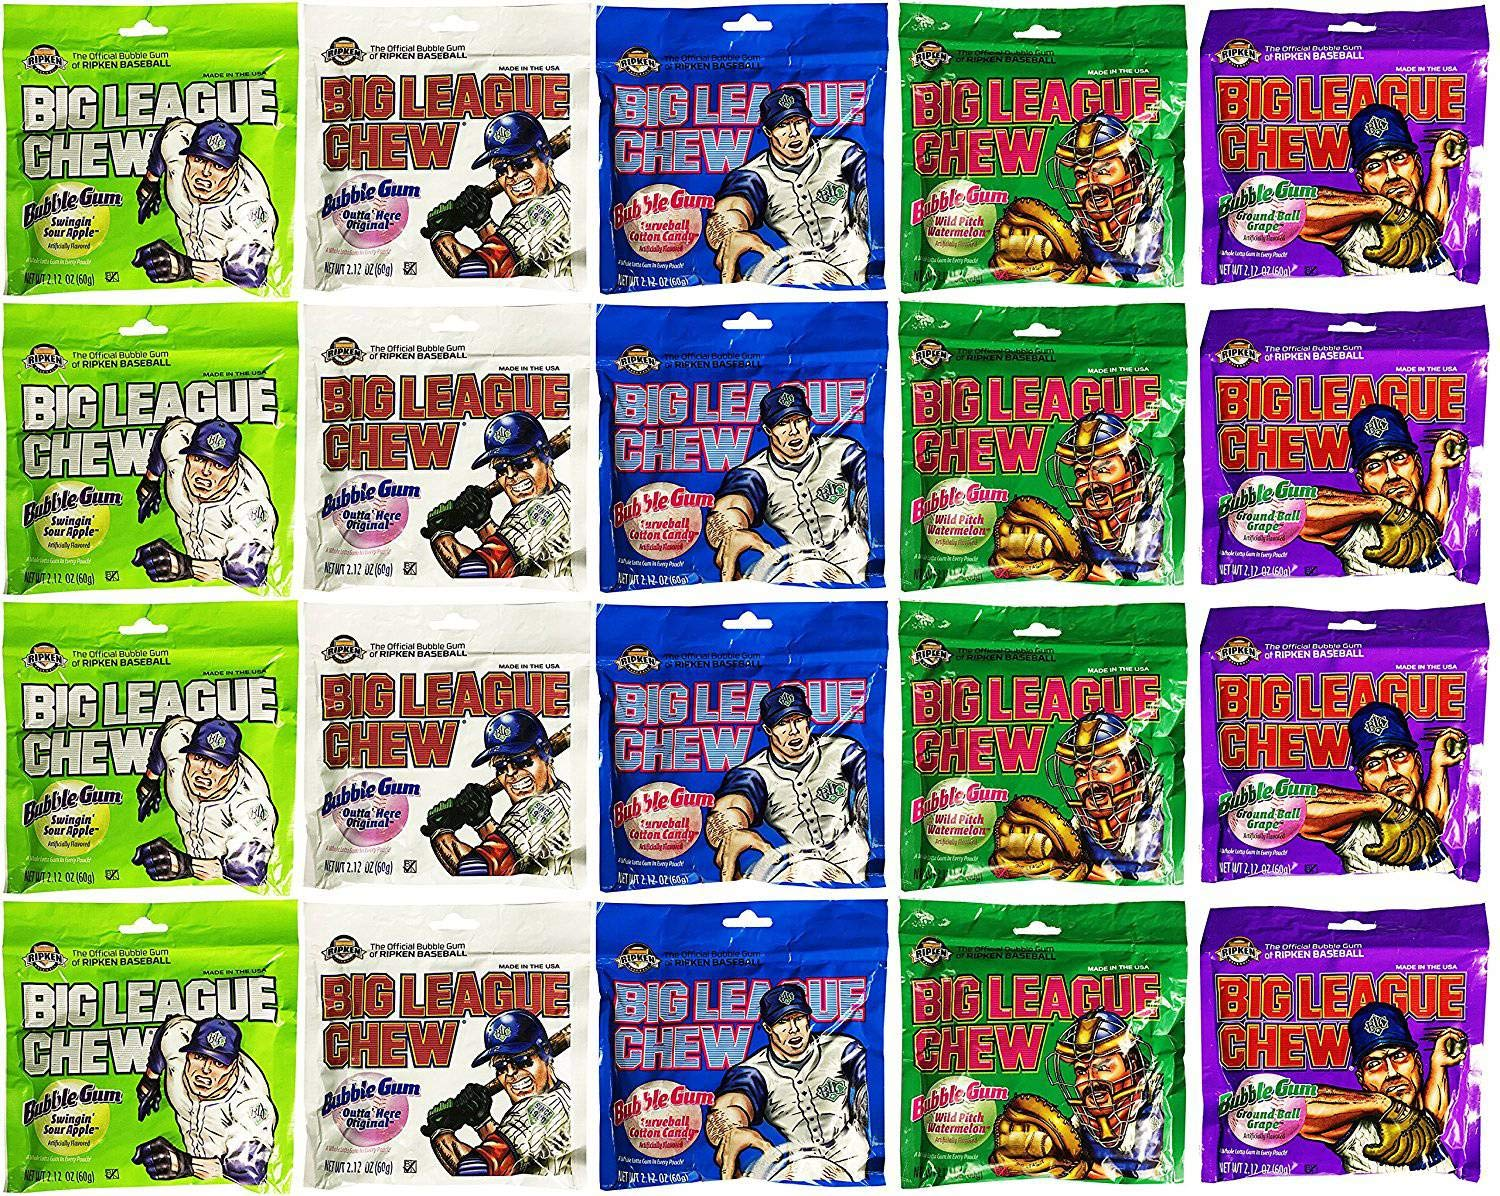 Big League Chew Bubble Gum Variety Pack 5 Flavors (Pack of 20) by Big League Chew (Image #1)